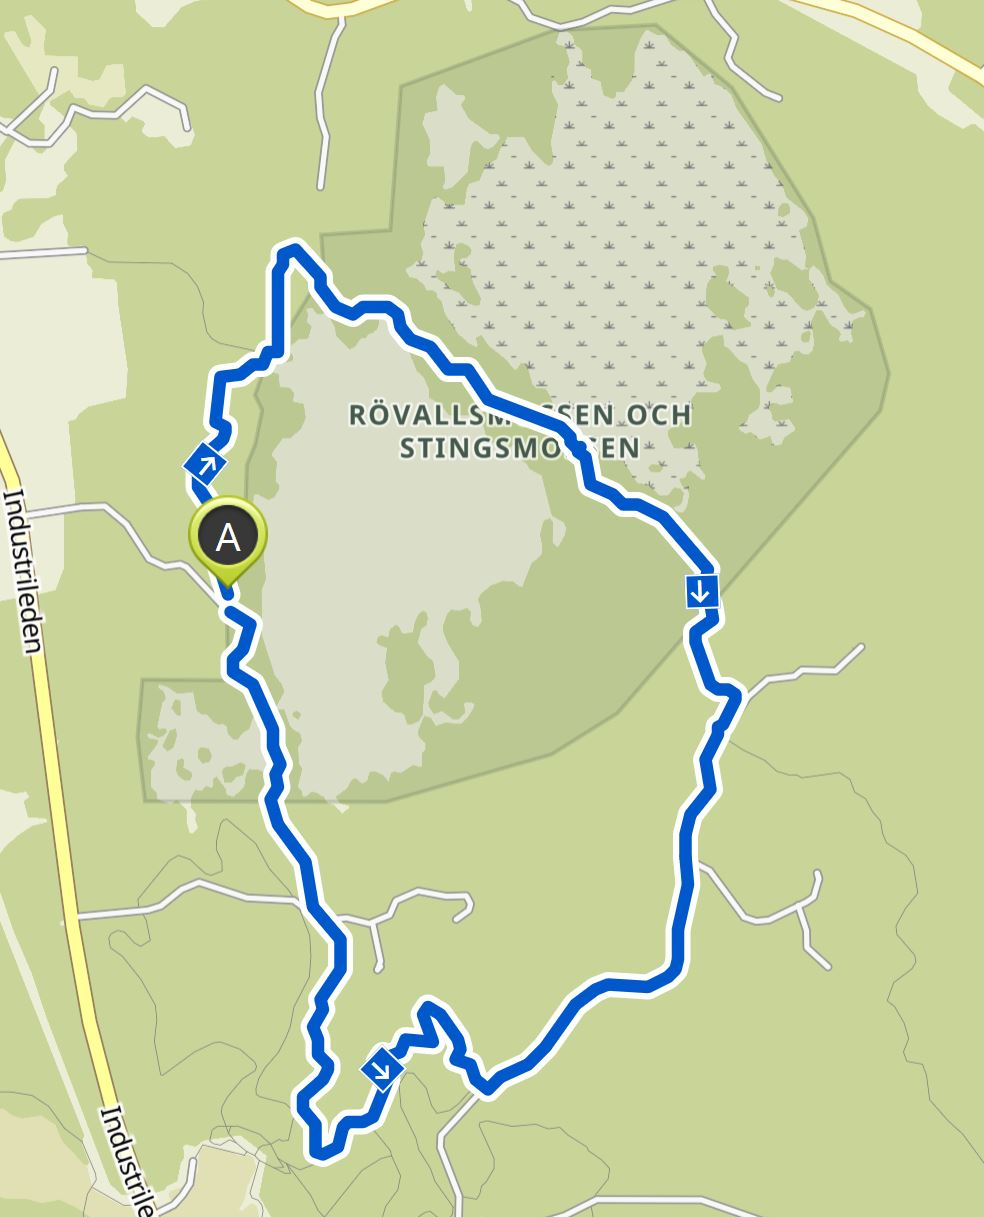 Our hike on the map at Stingmossen